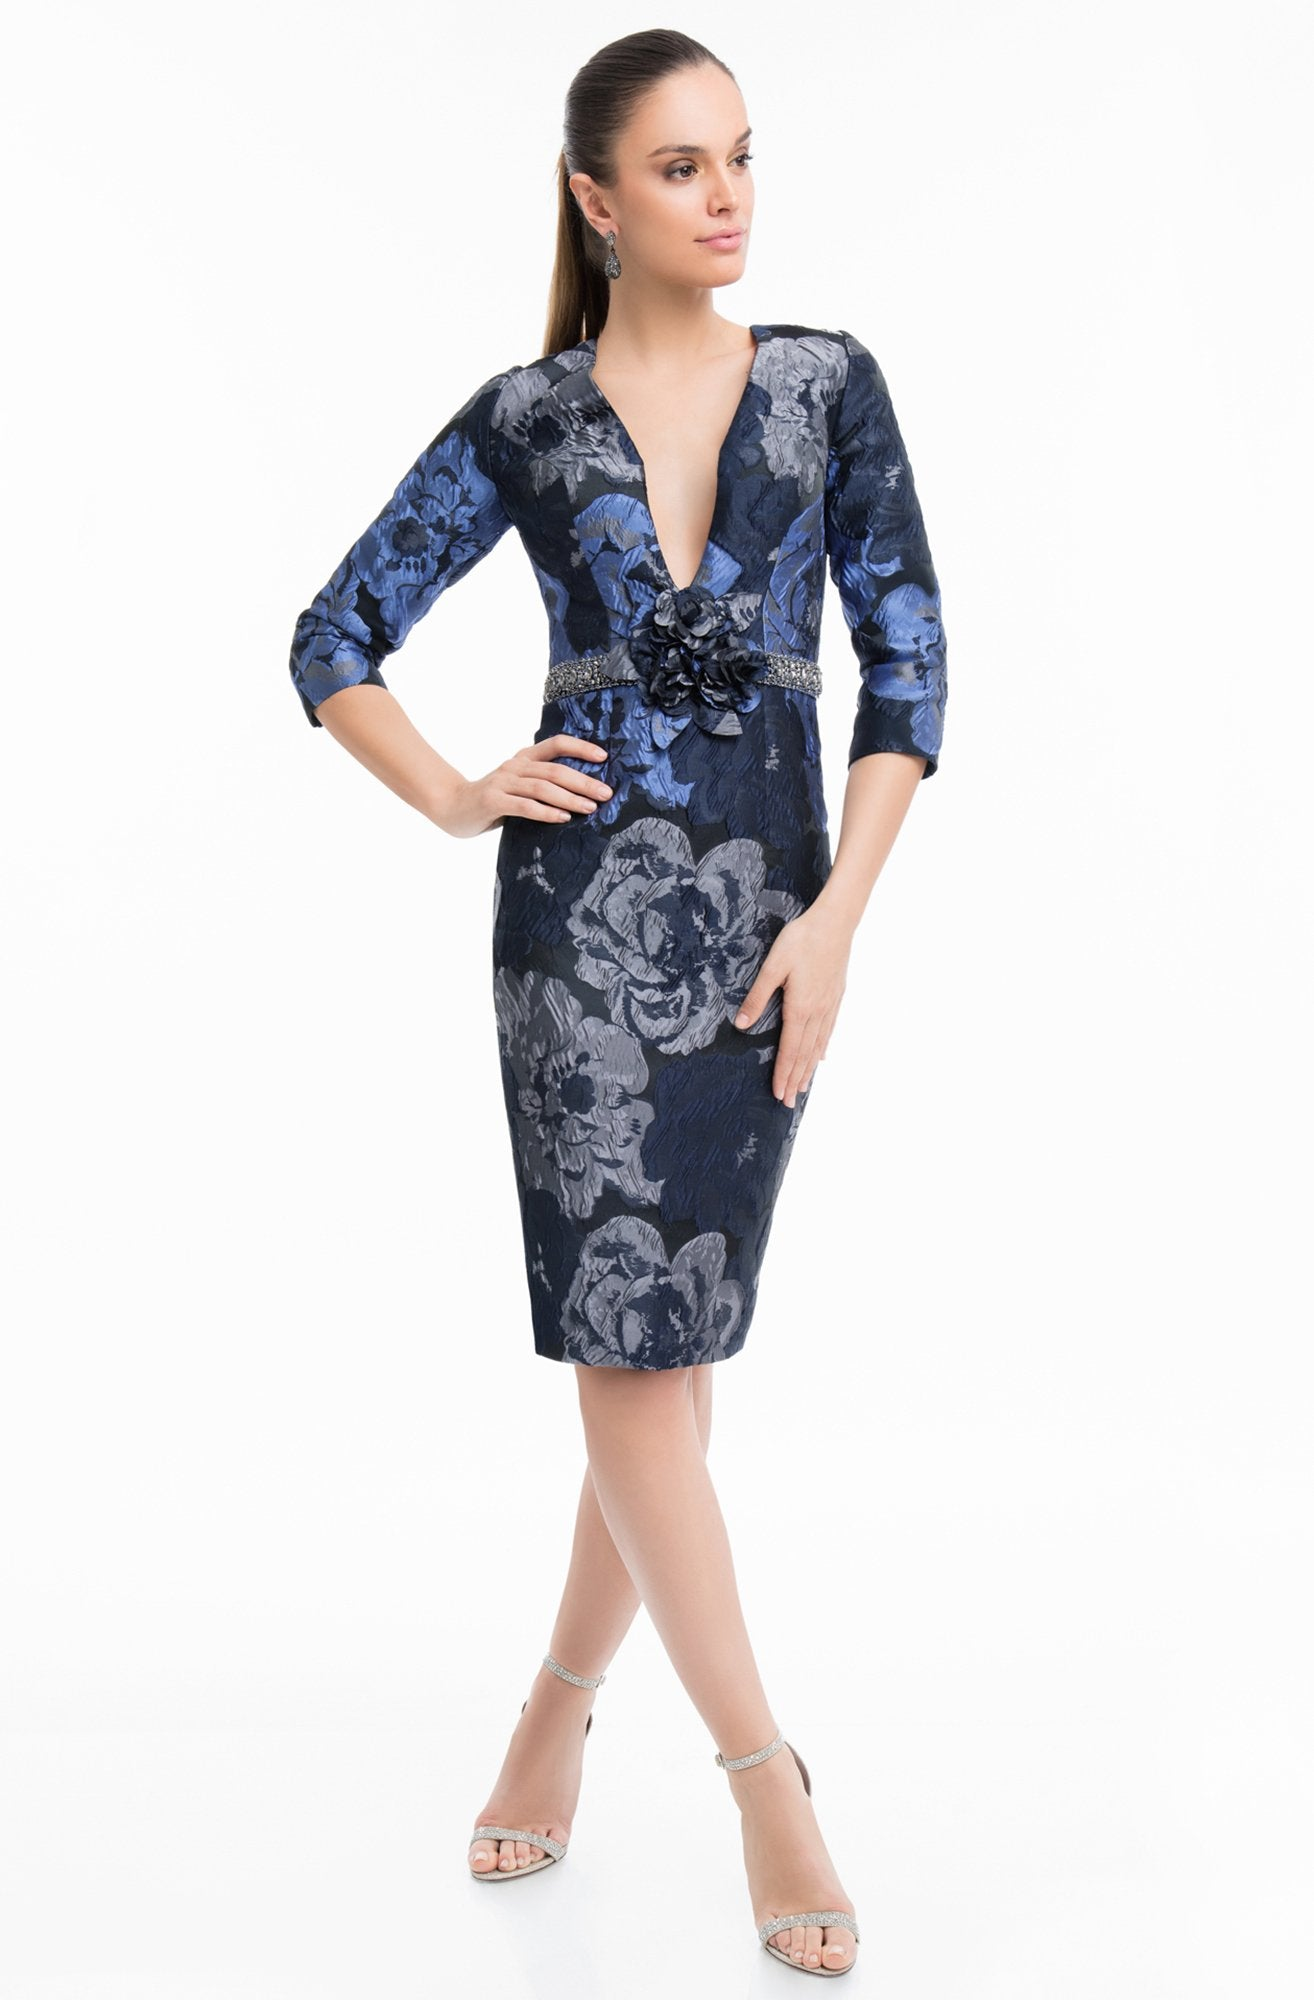 Terani Couture - 1821C7020 Plunging Floral Quarter Length Sleeves Dress in Blue and Silver